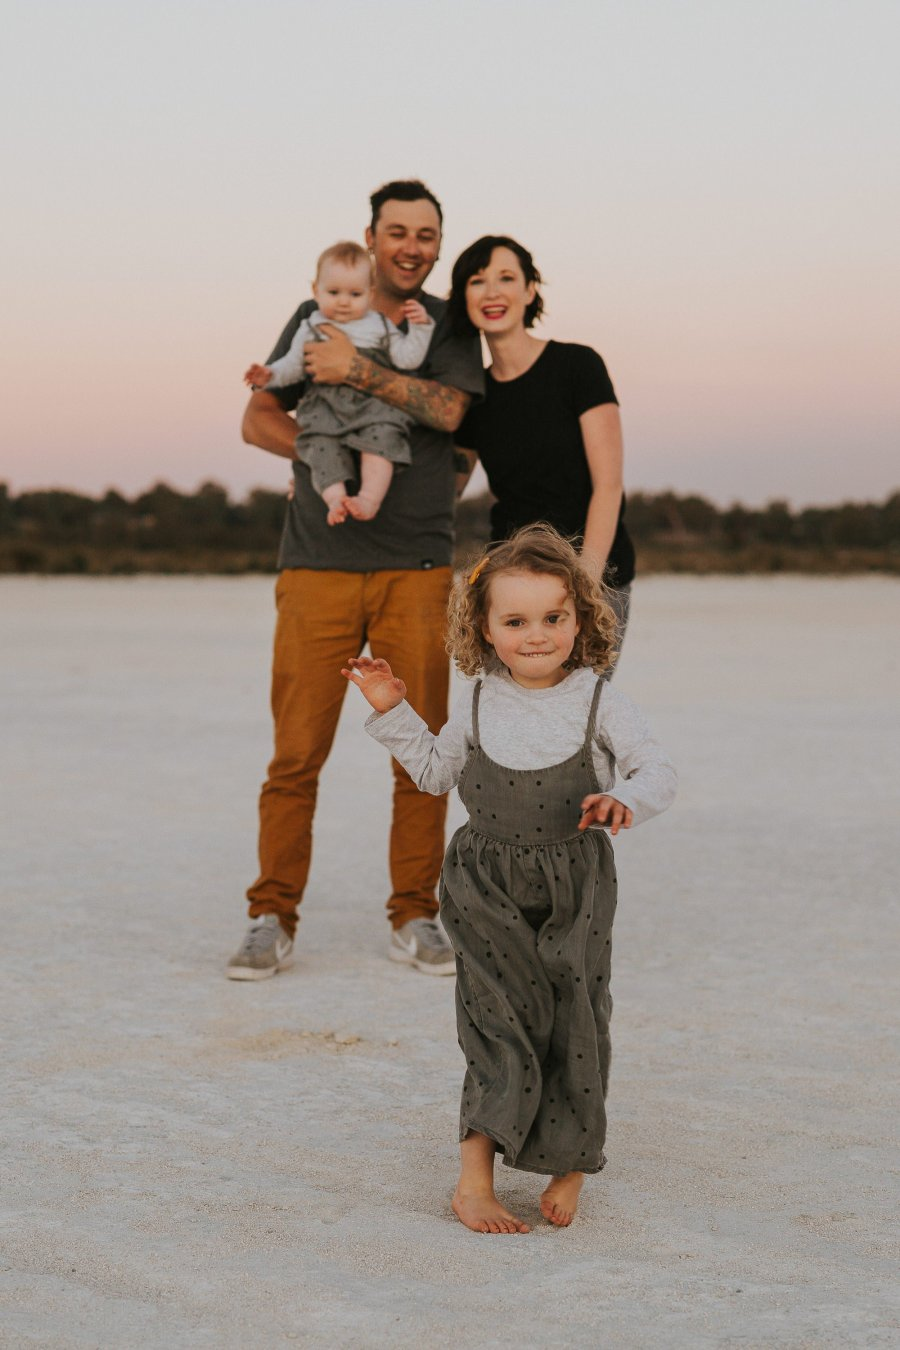 Perth Lifestyle Photography | Perth Family Photographer | Ebony Blush Photography - The Thomsons428